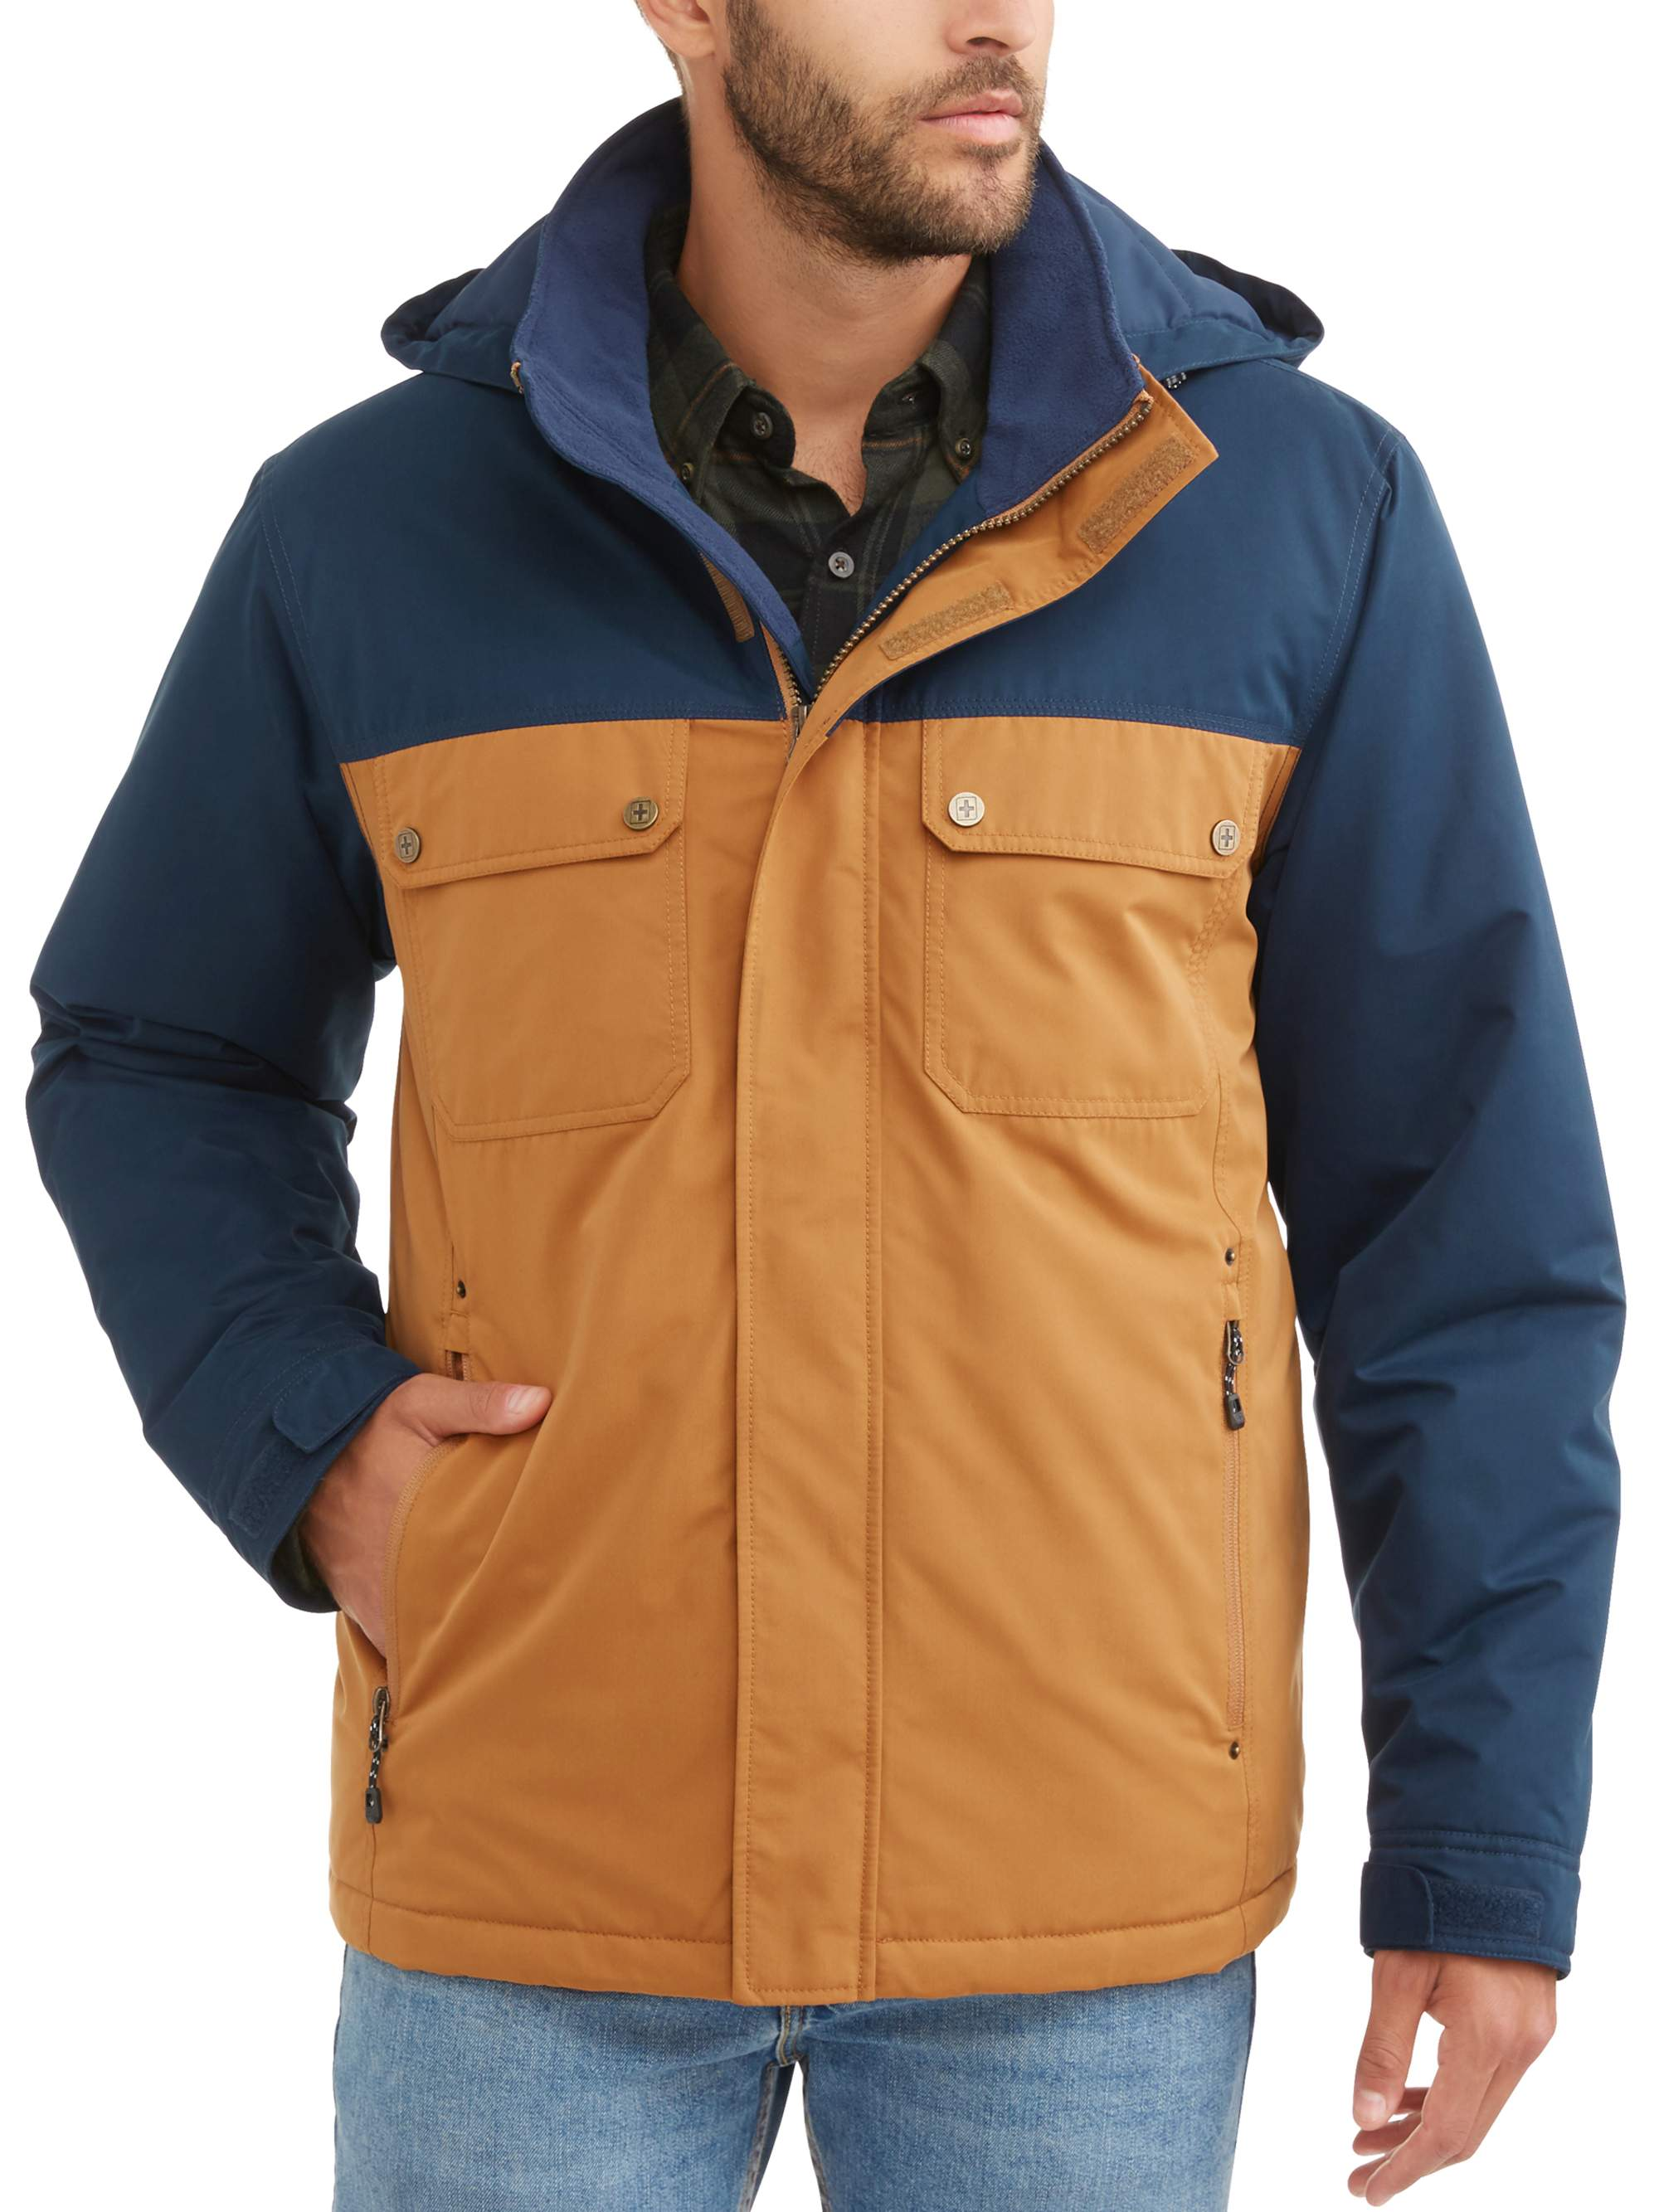 Men's Midweight Jacket, up to size 5XL